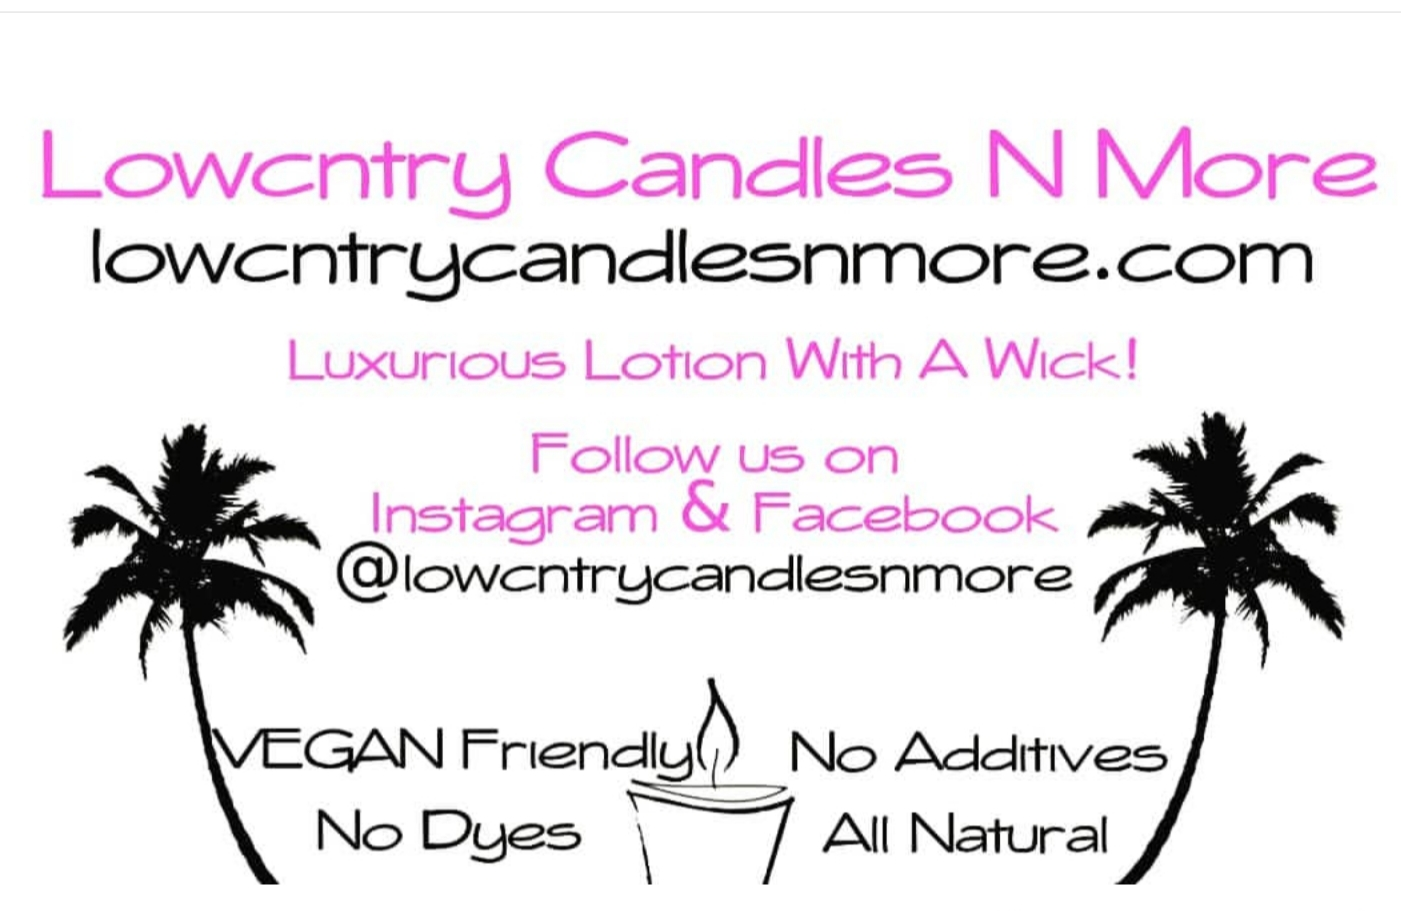 Lowcntry Candles N More